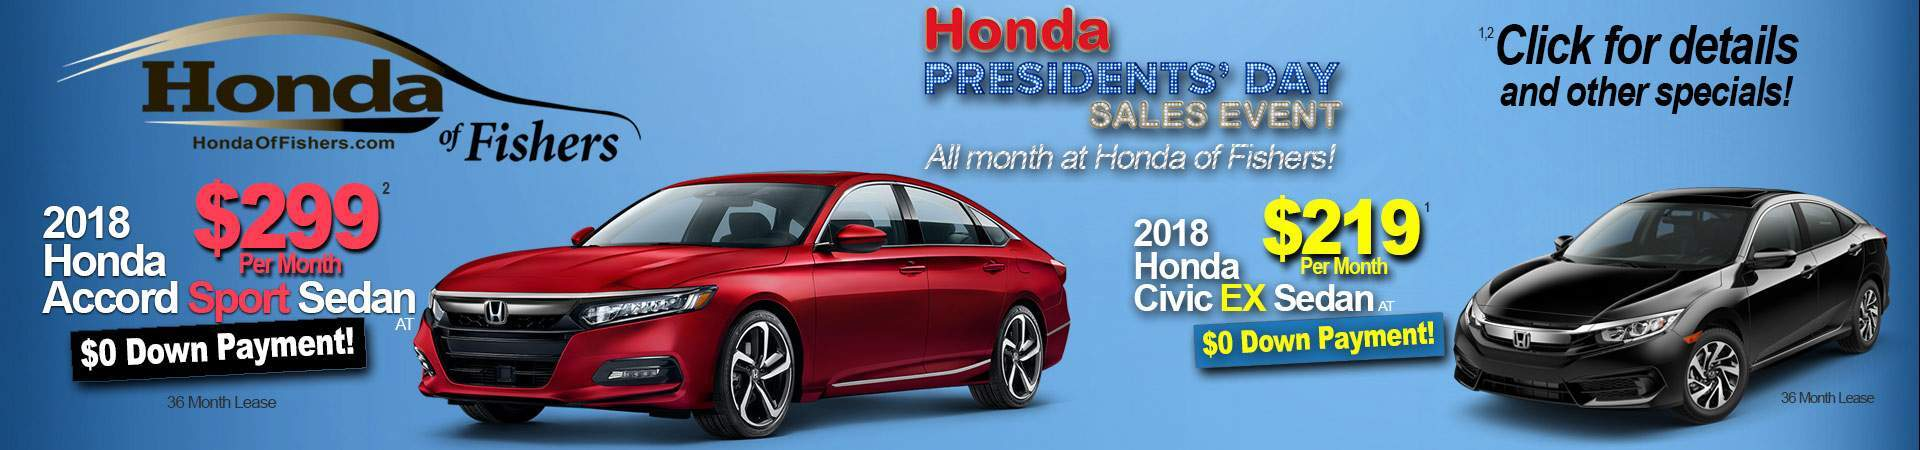 February specials at Honda of Fishers